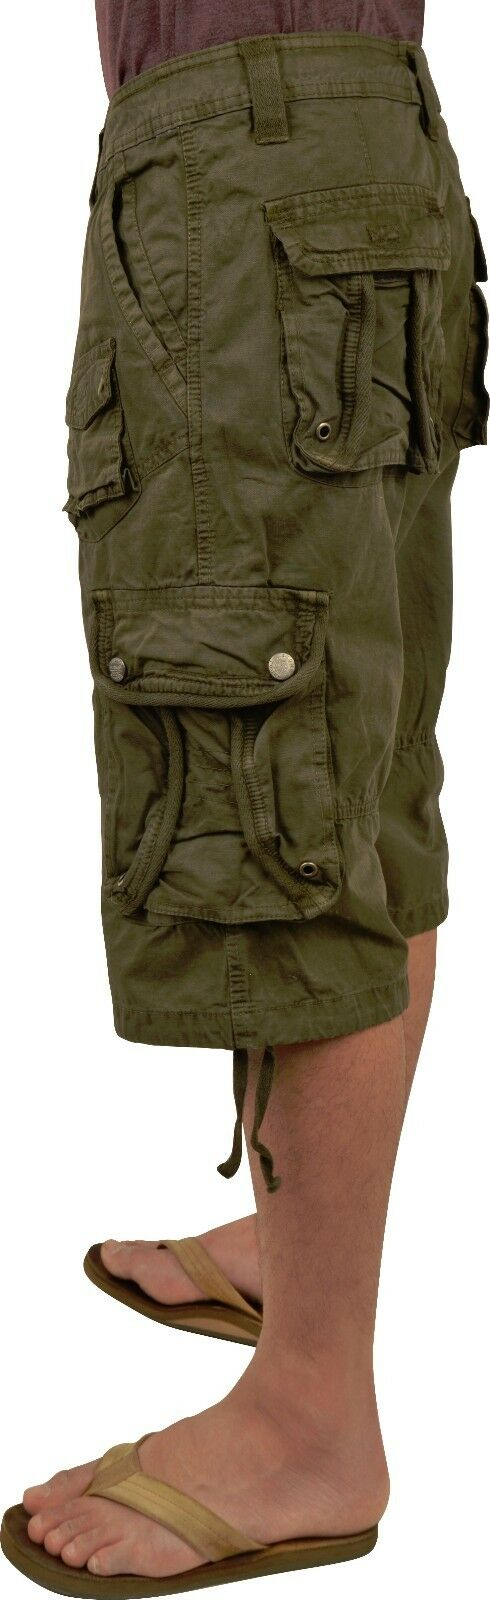 BN  MENS sizes 30-54  SOLID COLOR CARGO SHORTS S